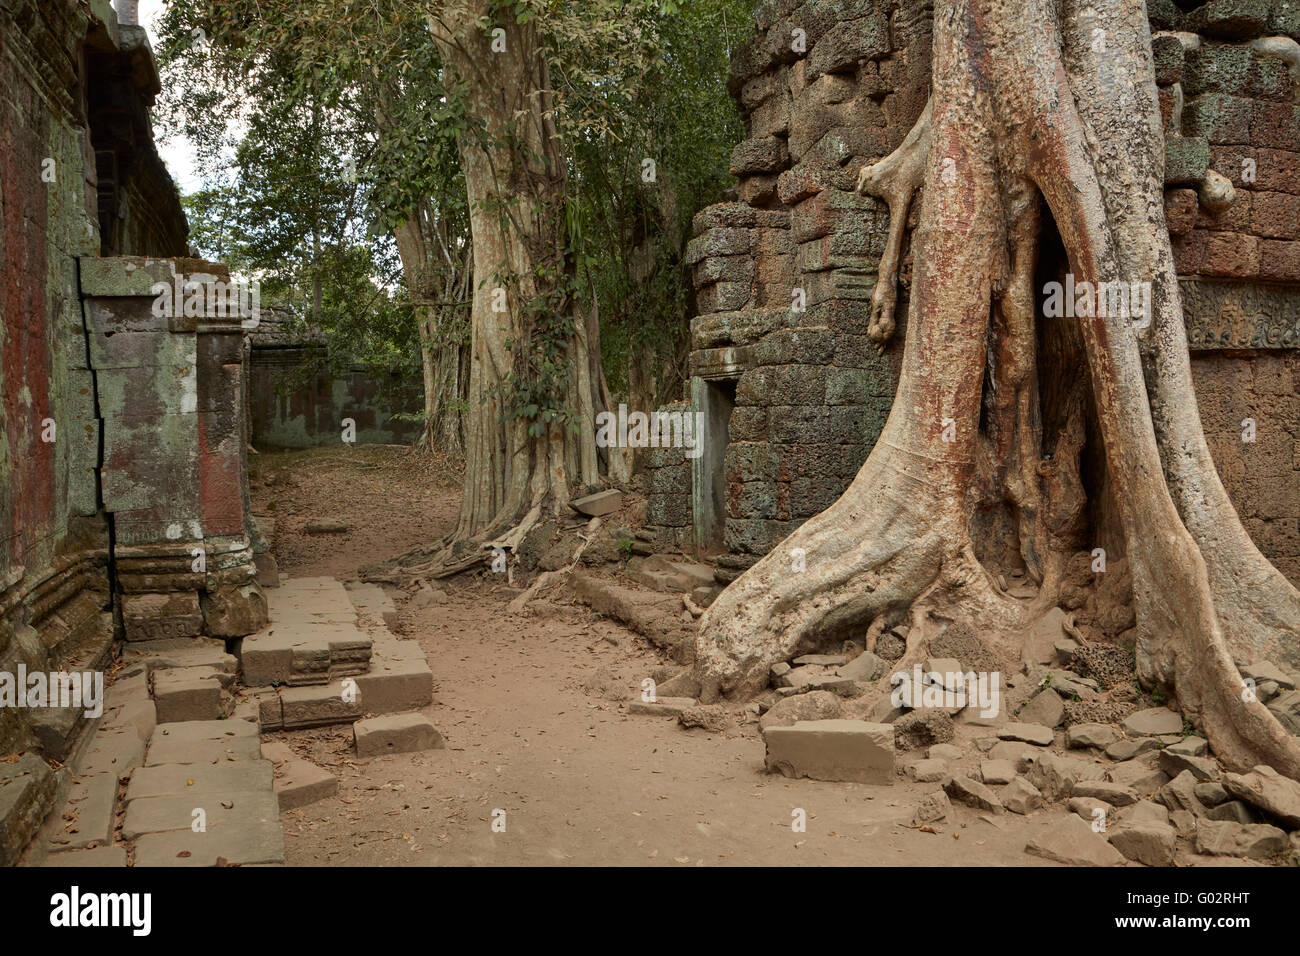 Tree roots growing over Ta Prohm temple ruins (12th century), Angkor World Heritage Site, Siem Reap, Cambodia - Stock Image